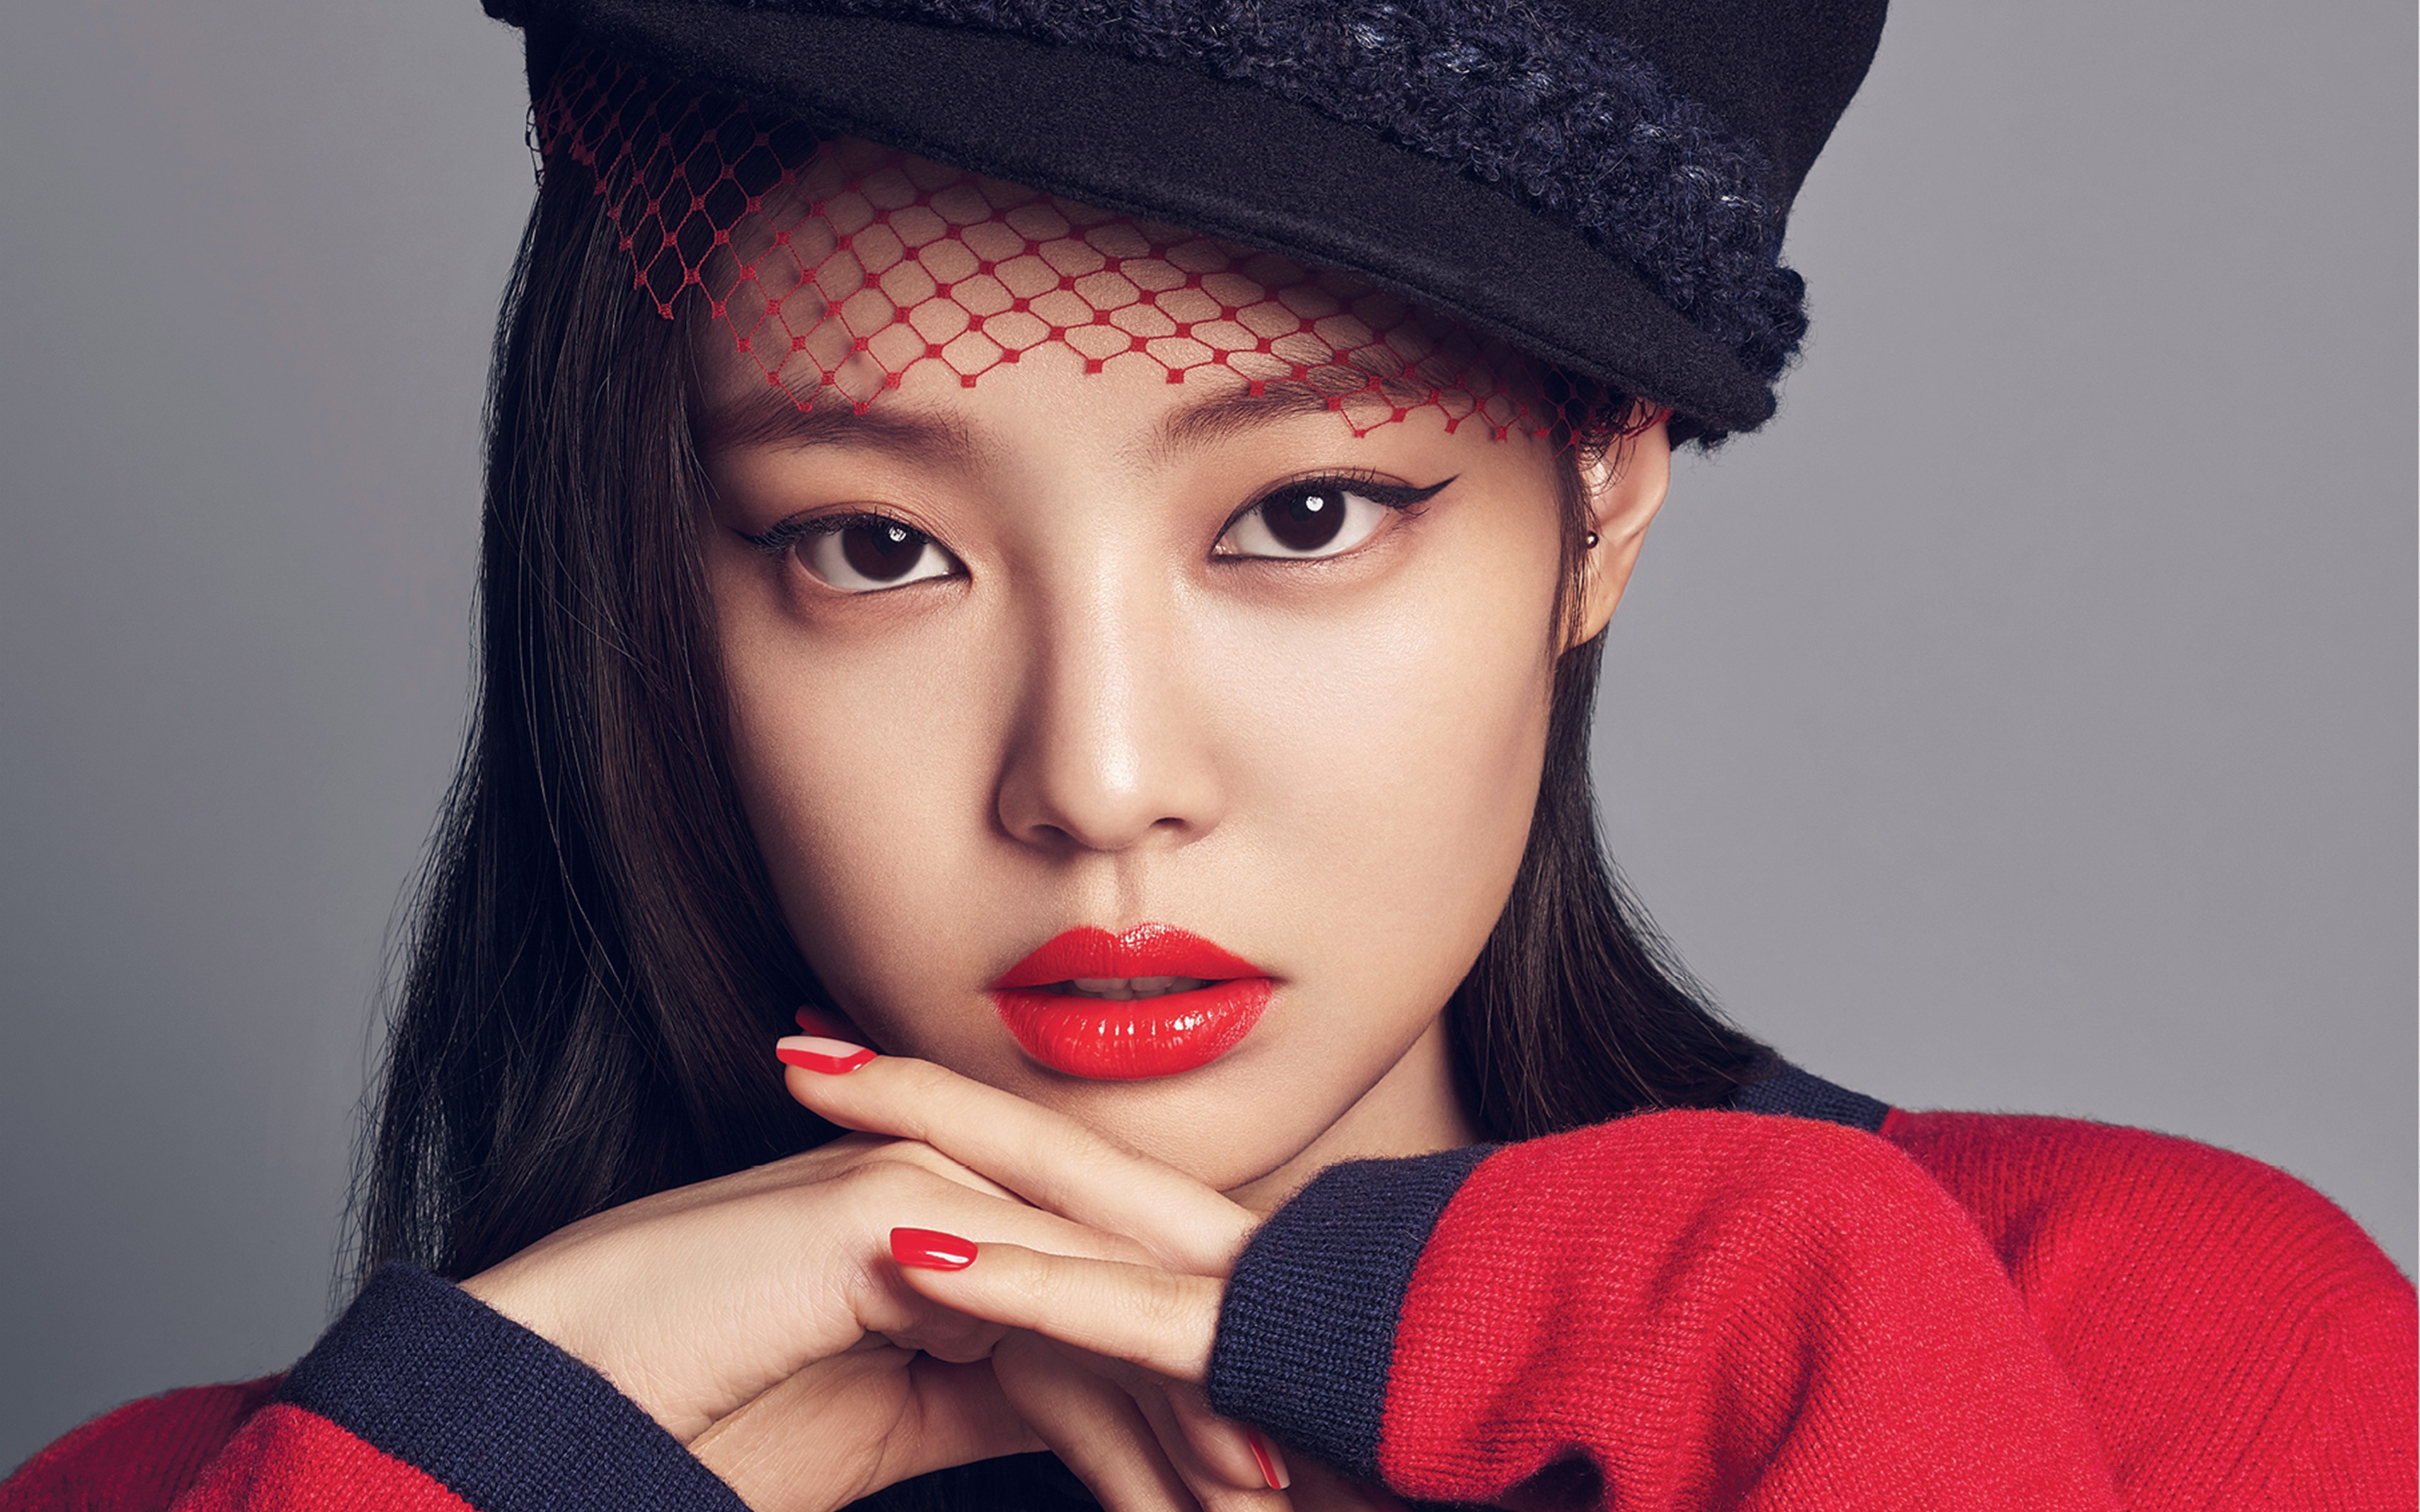 Jennie Blackpink Wallpaper Hd 3840x2400 Download Hd Wallpaper Wallpapertip